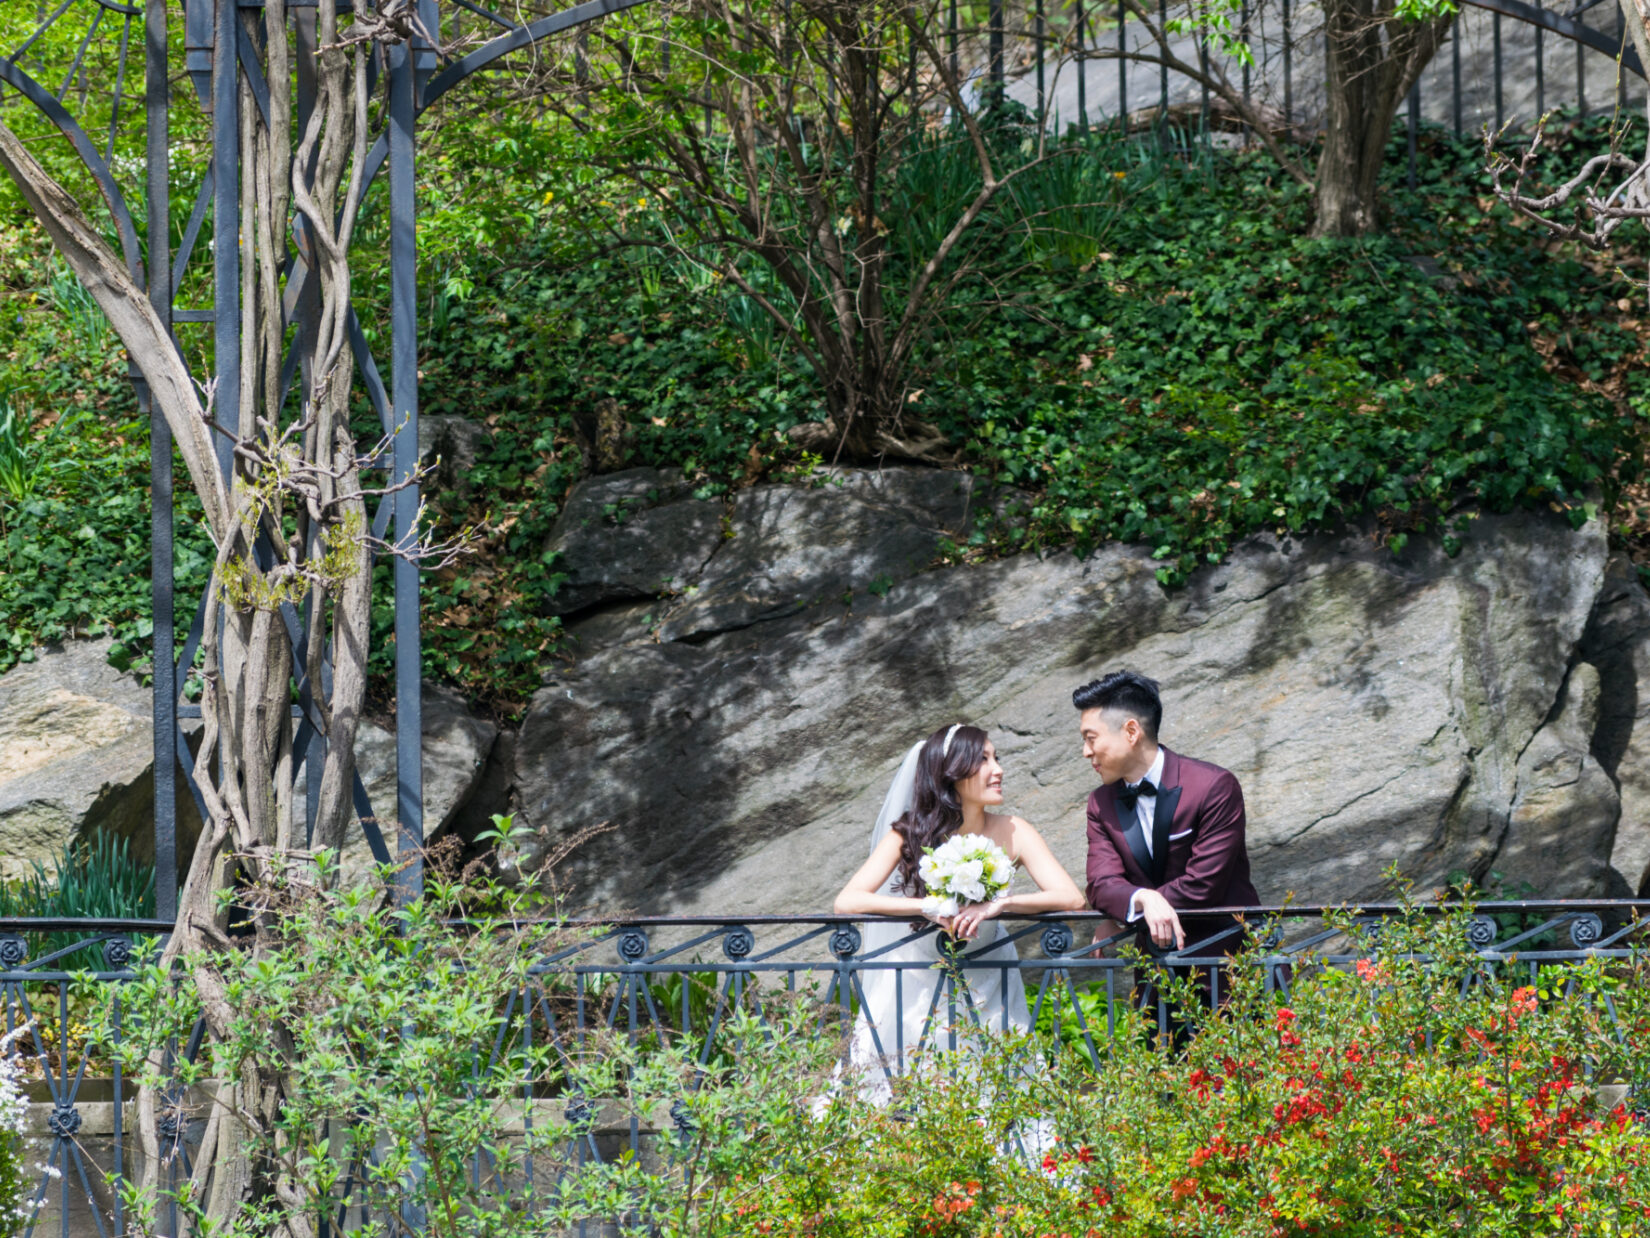 A bridge and groom in a casual moment in Conservatory Garden